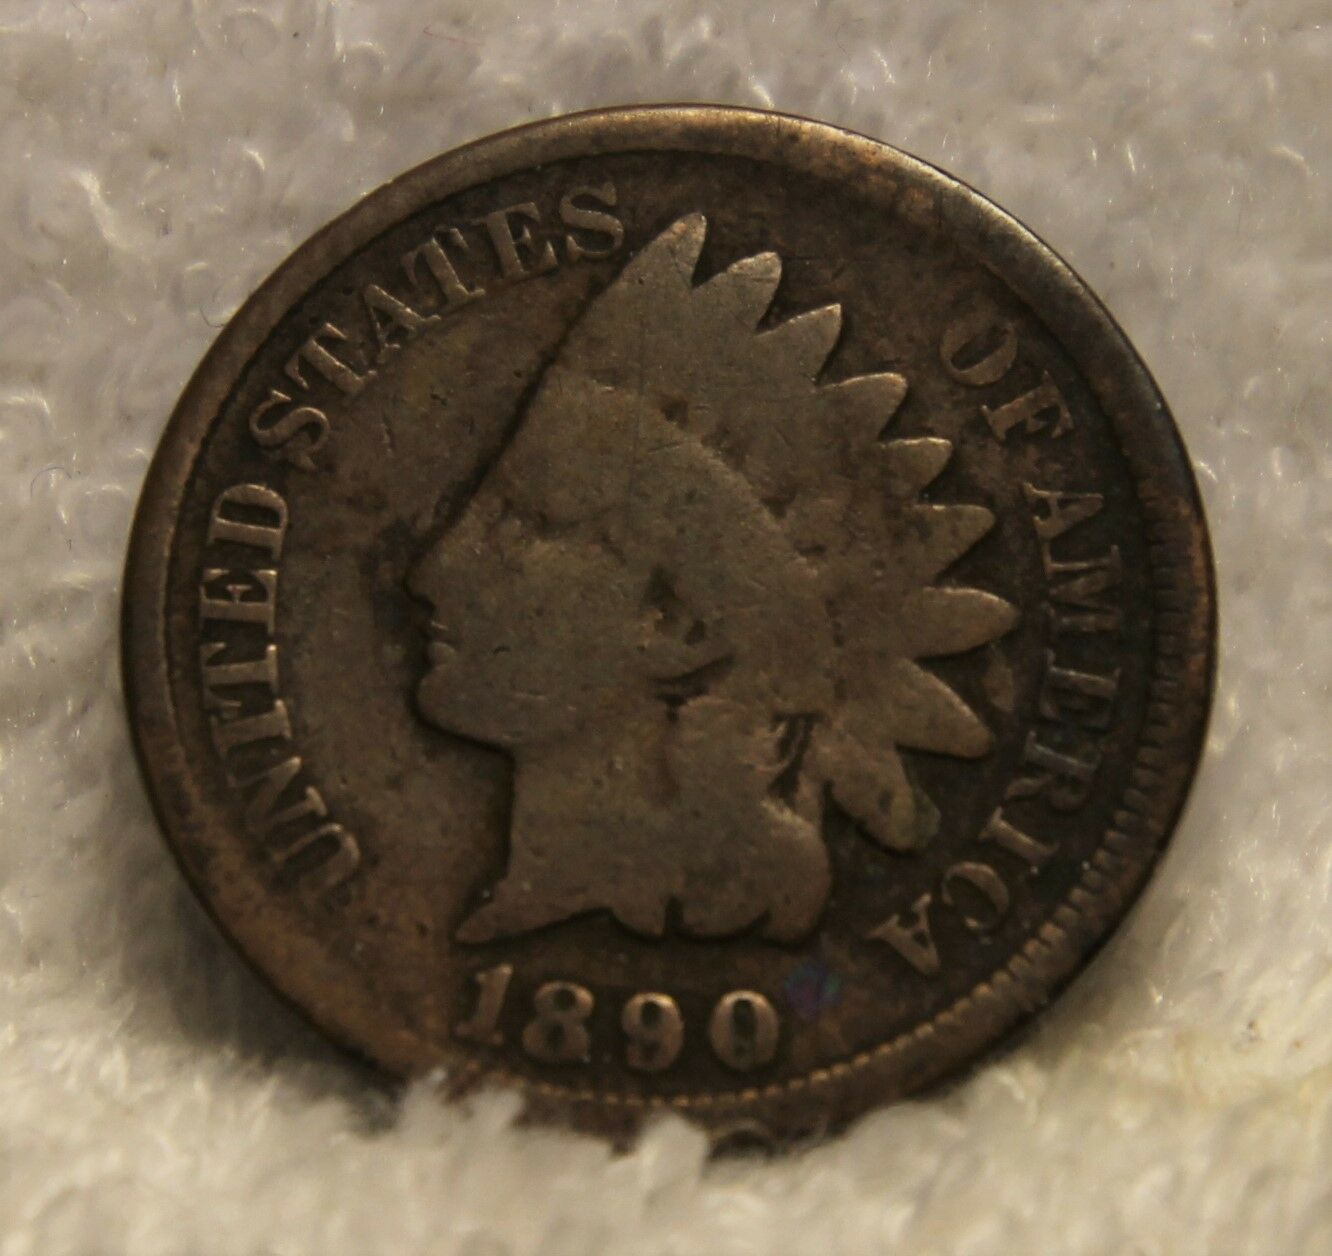 1890 Indian Head Penny - $3.50